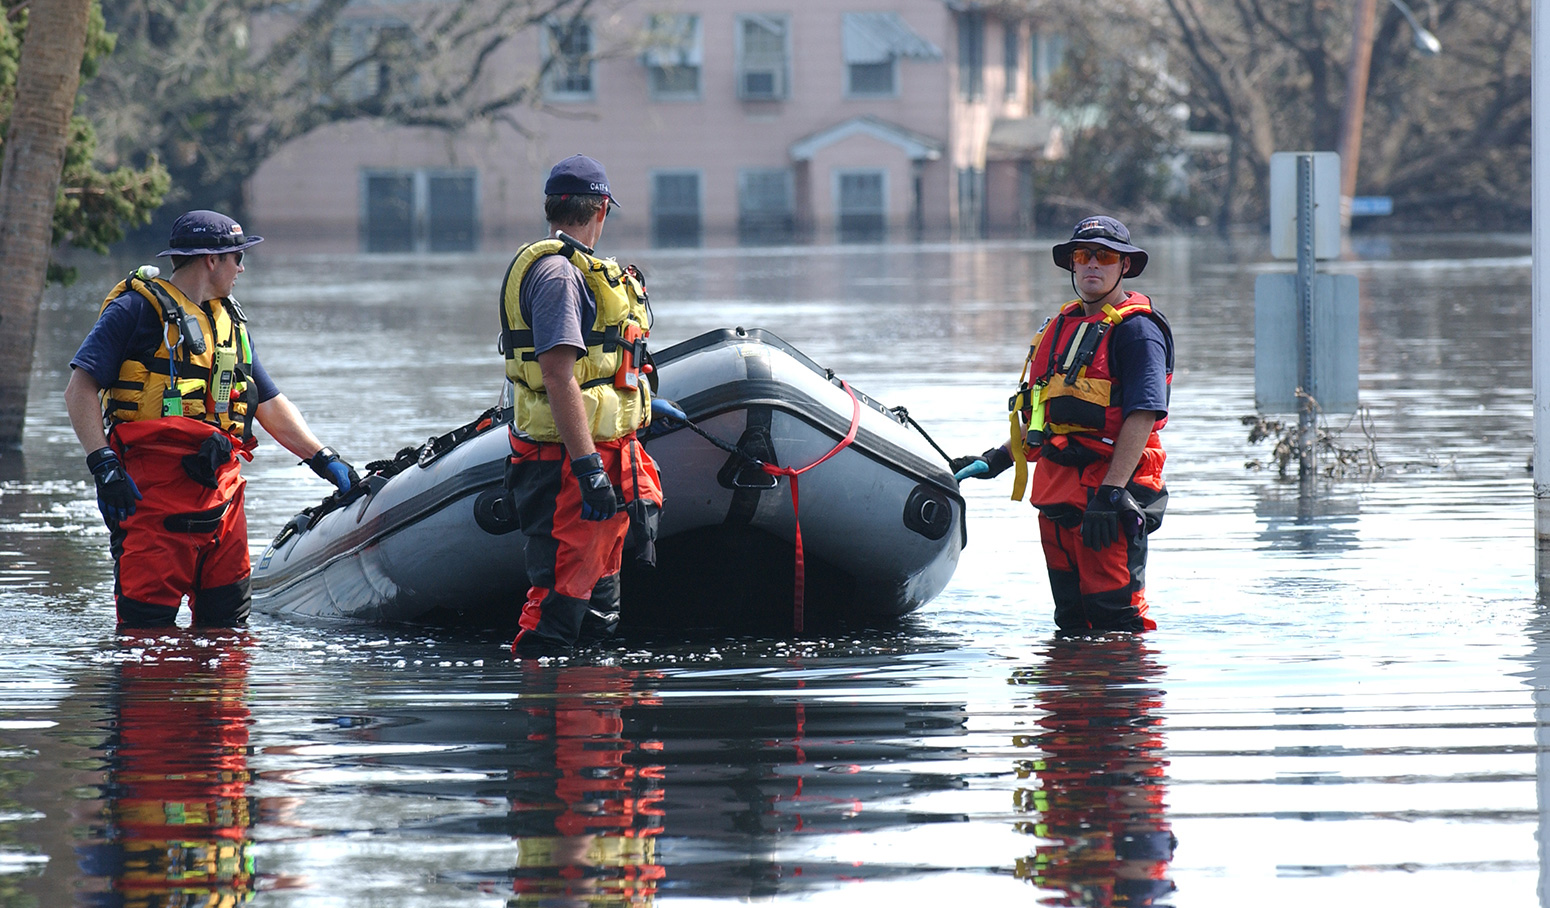 Three emergency personell pull dingy through flooded street